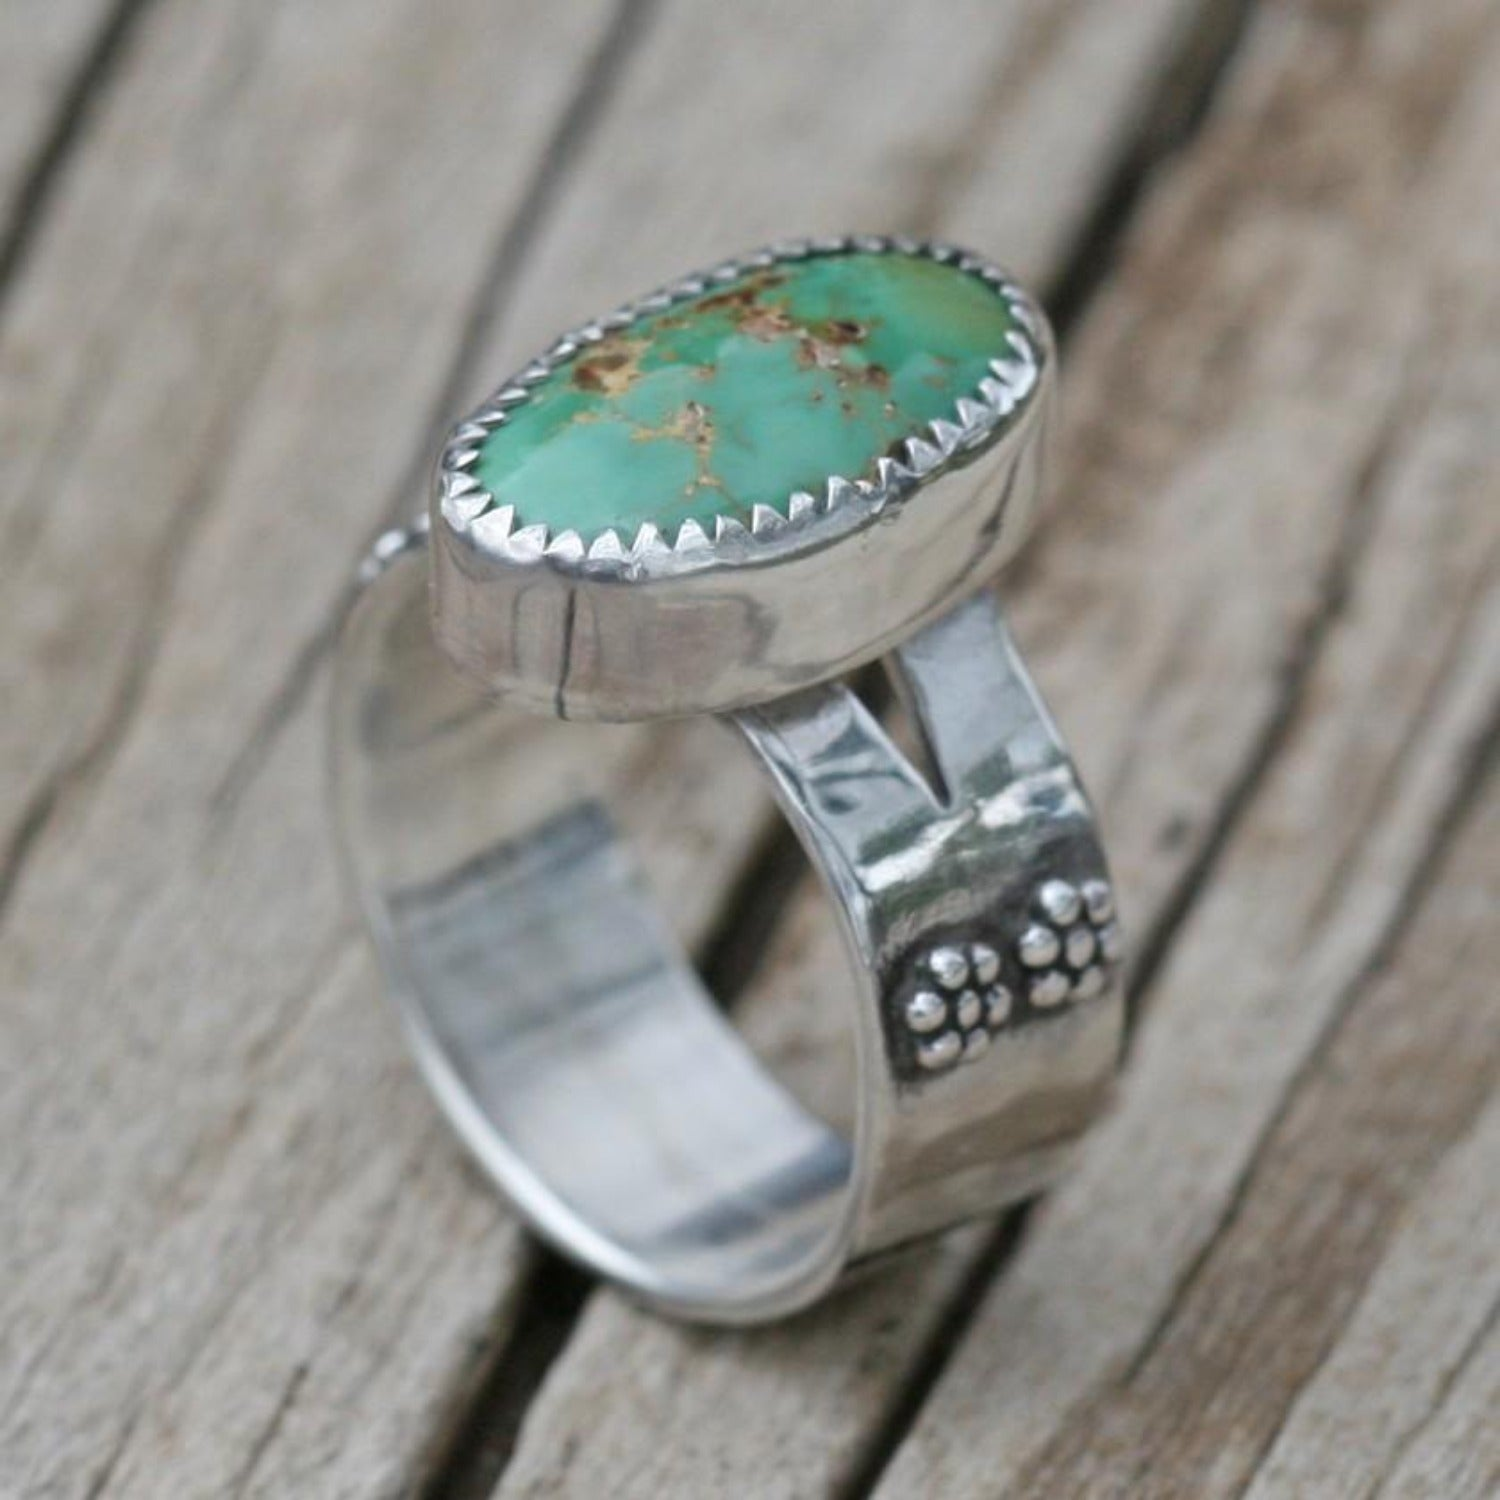 Boho Green Turquoise Sterling Silver Ring - Size 7 1/4